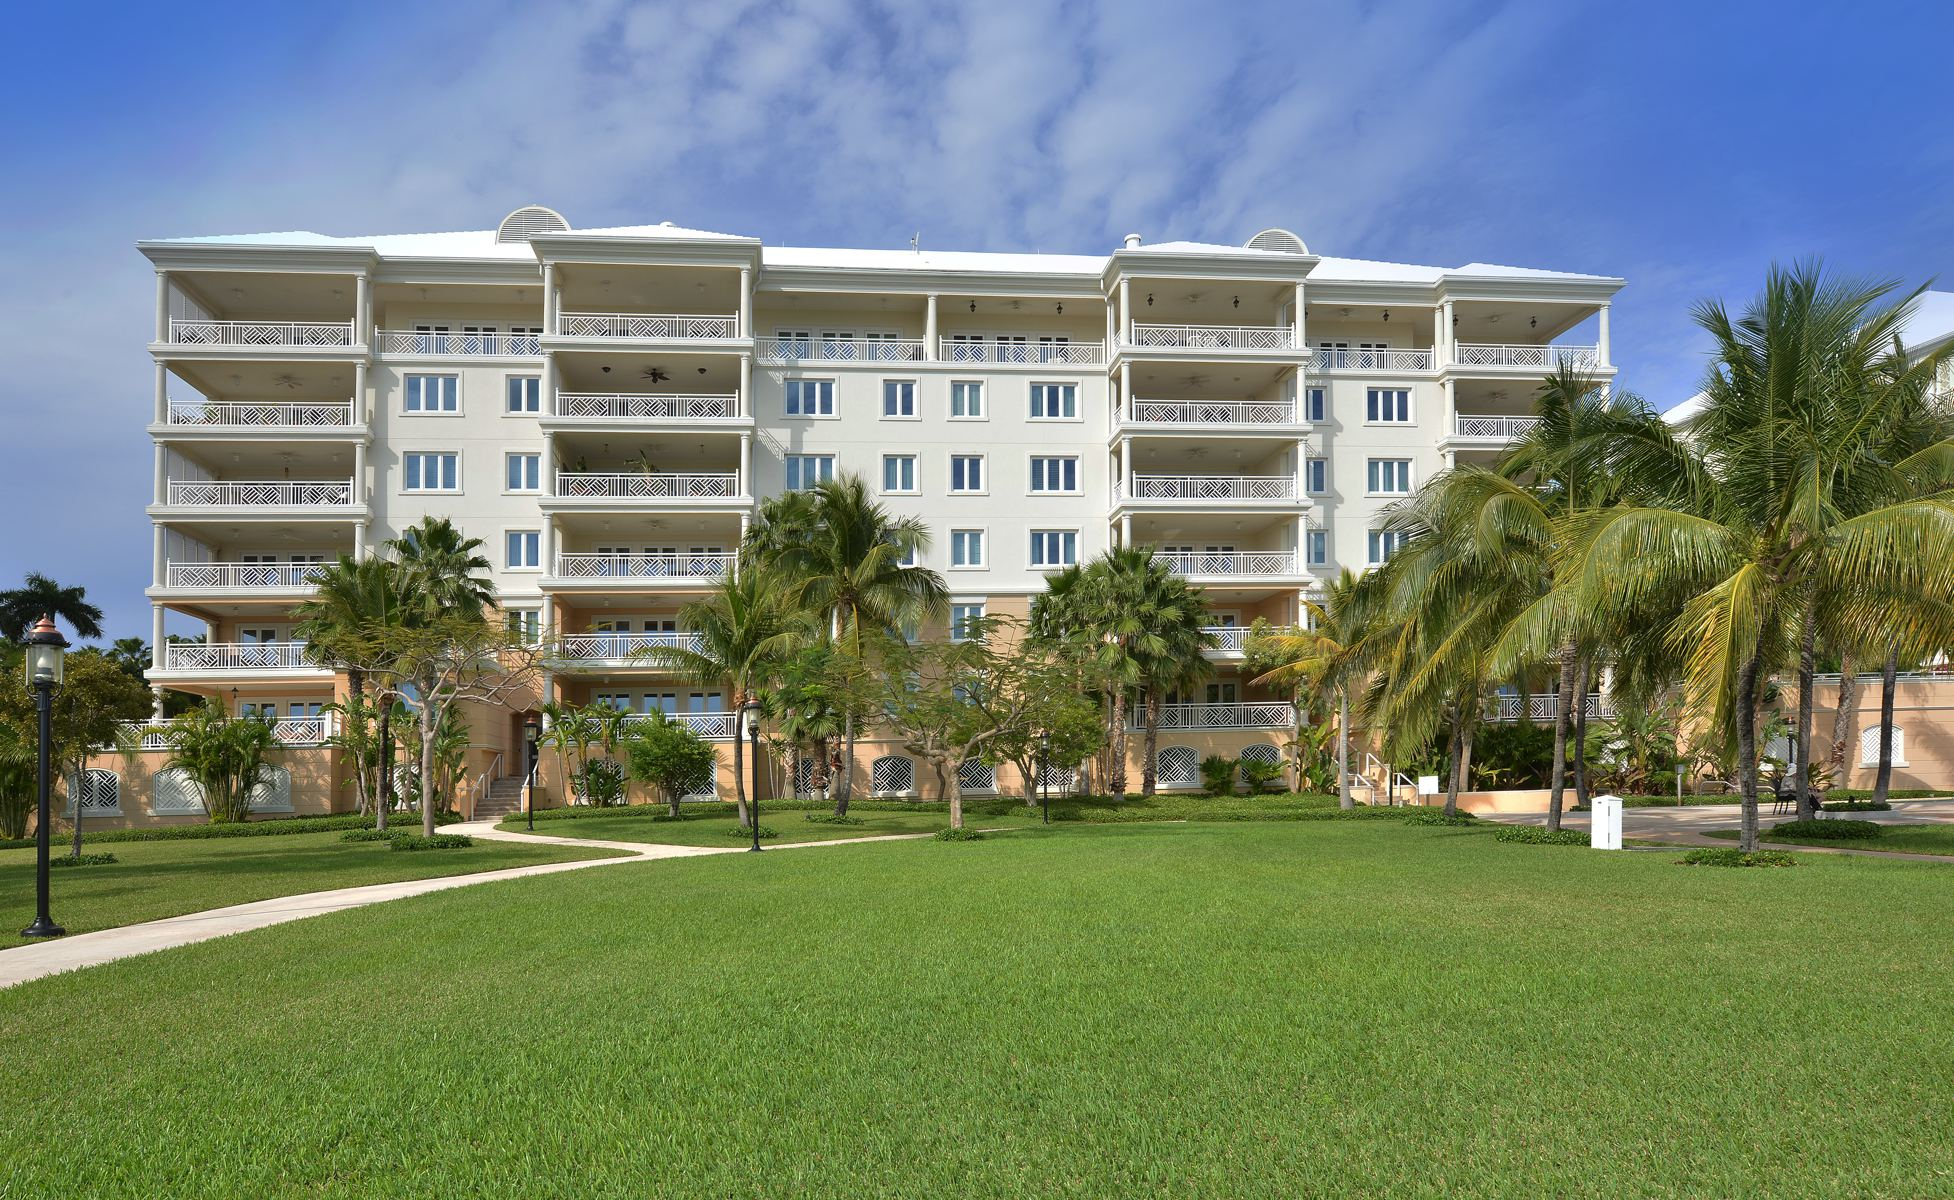 Additional photo for property listing at Ocean Club Residences & Marina Ocean Club Residences And Marina, 天堂岛, 新普罗维登斯/拿骚 巴哈马